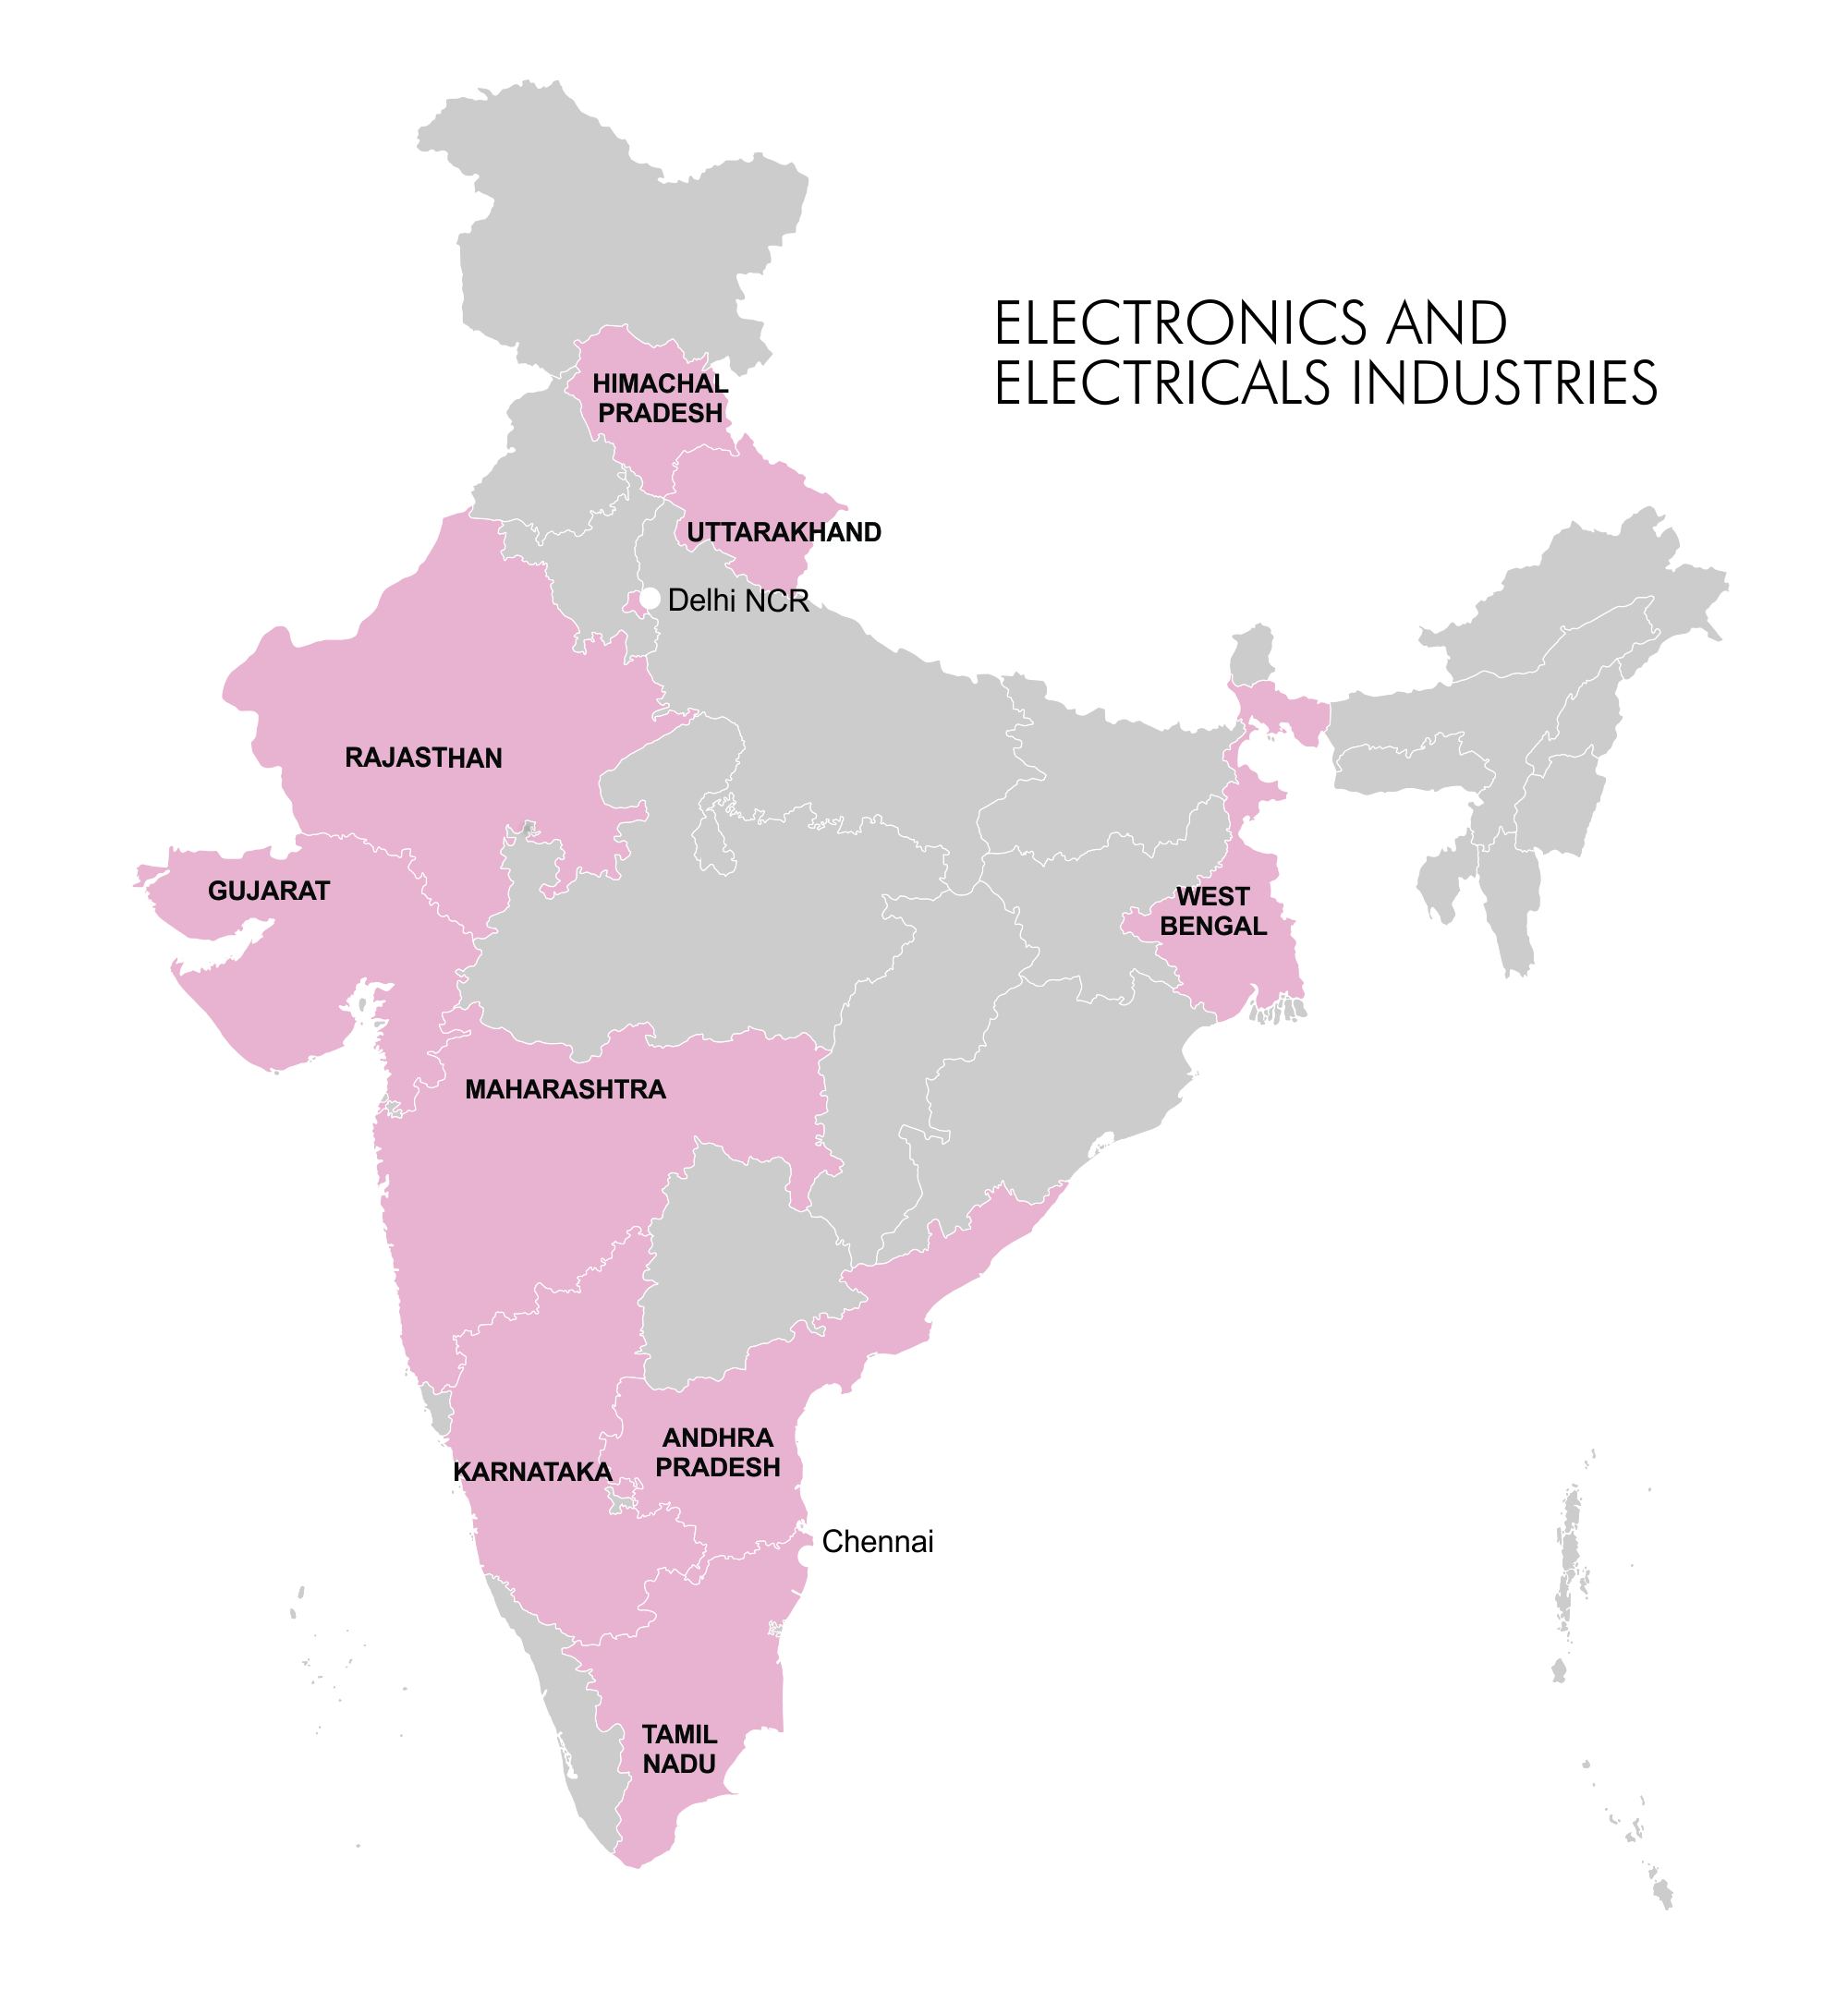 Map - Industry Clusters: Electronics